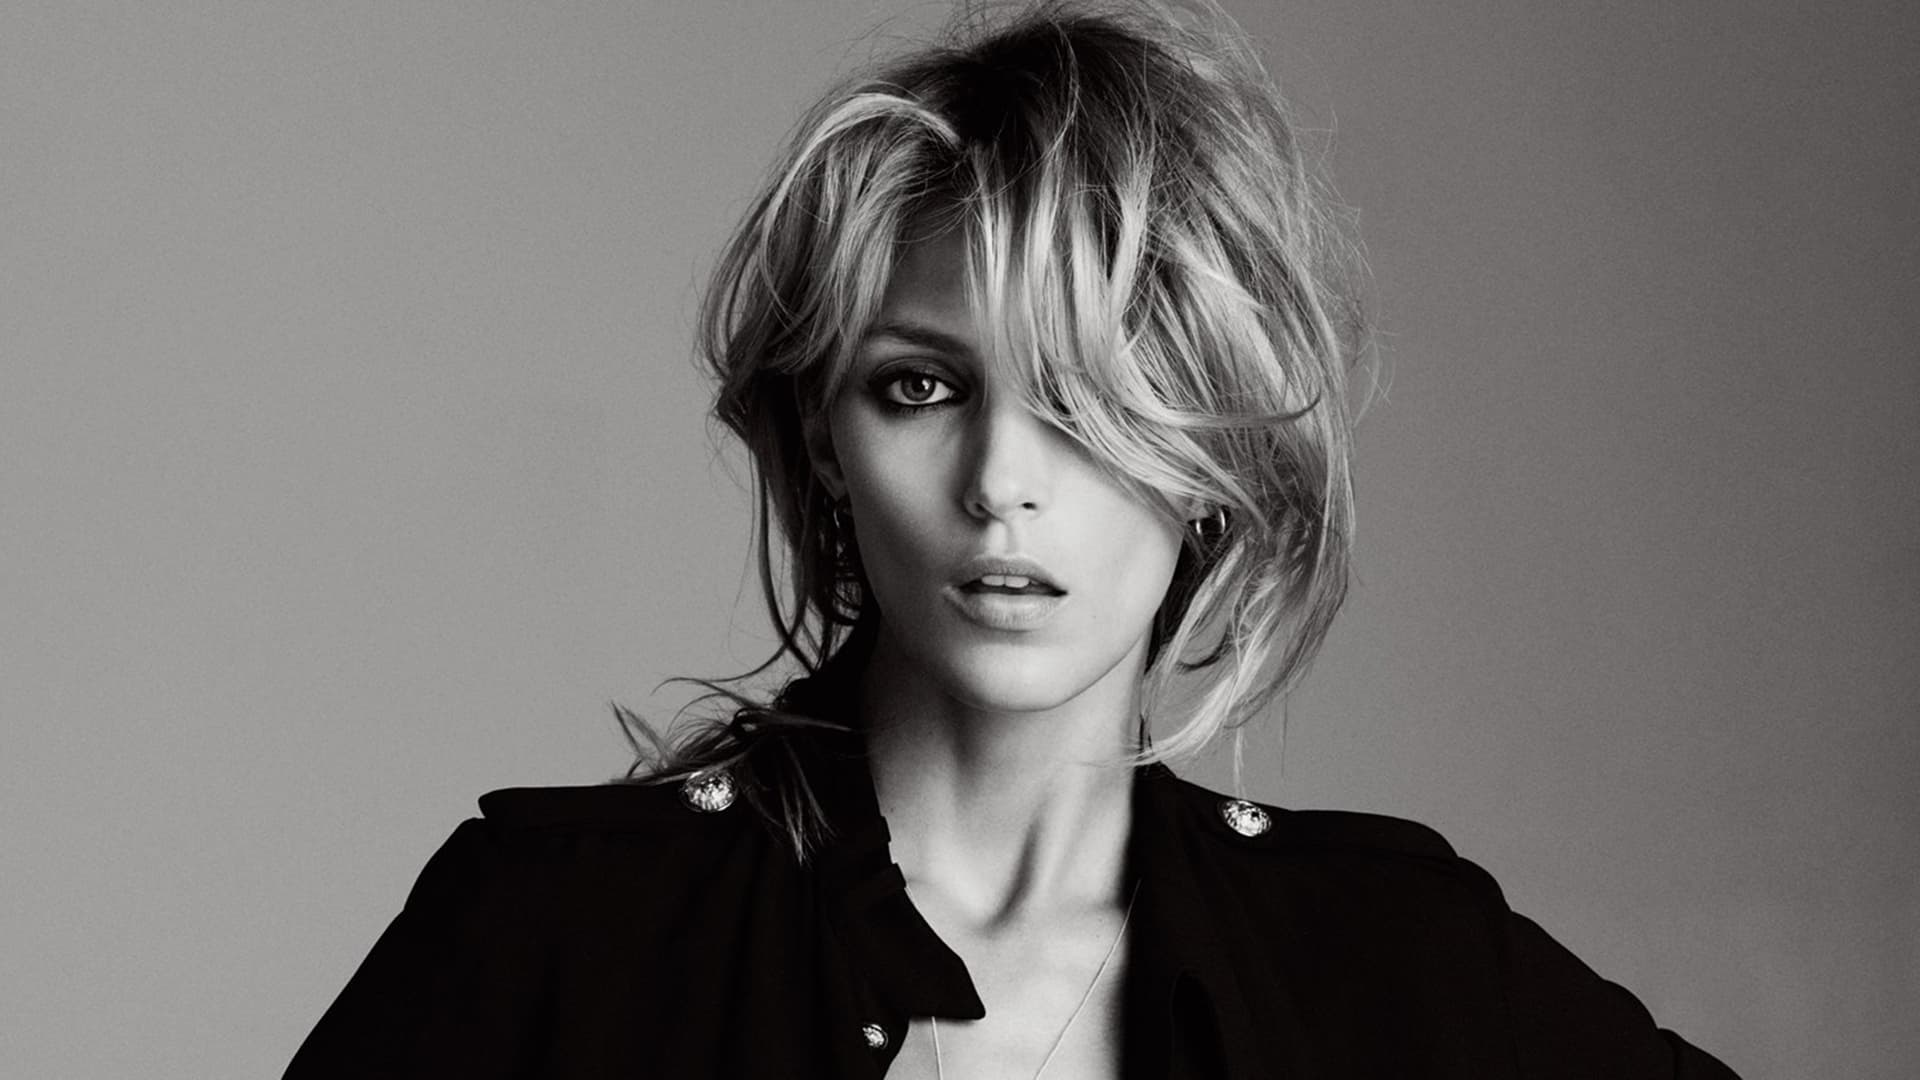 New Iphone Anja Rubik Wallpapers Hd High Quality Resolution Download